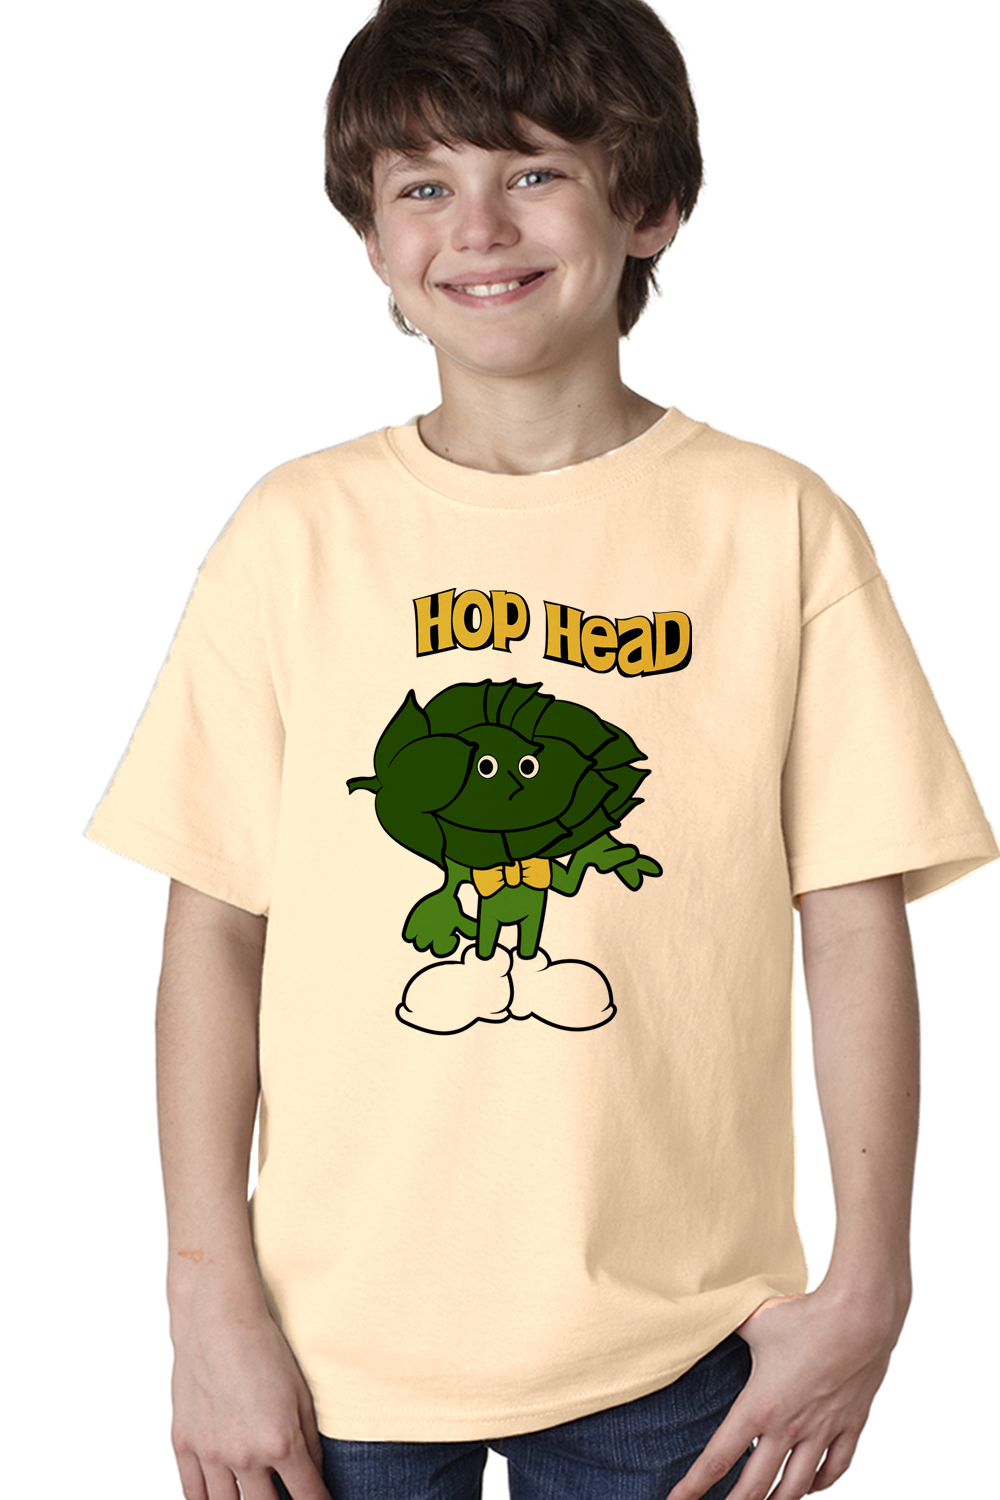 Hop head youth unisex t shirt funny craft beer lover for Funny craft beer shirts